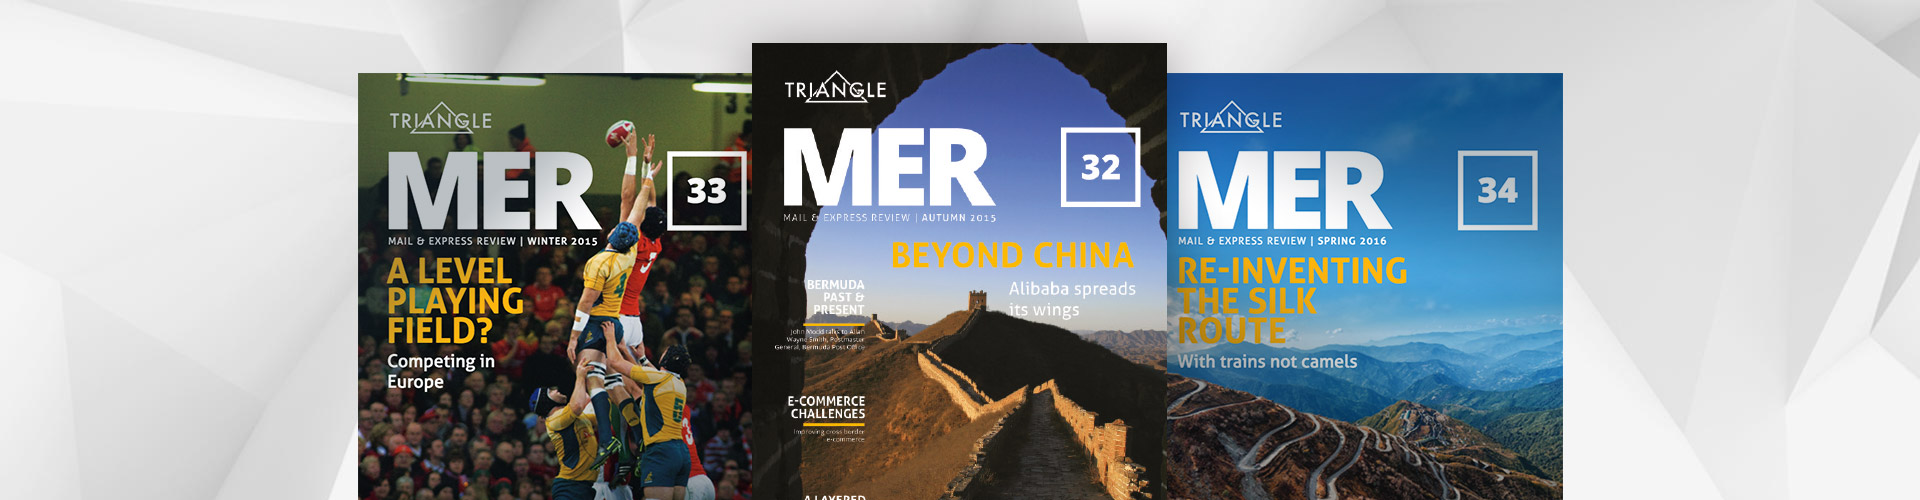 Triangle offers new mobile experience for MER Magazine readers